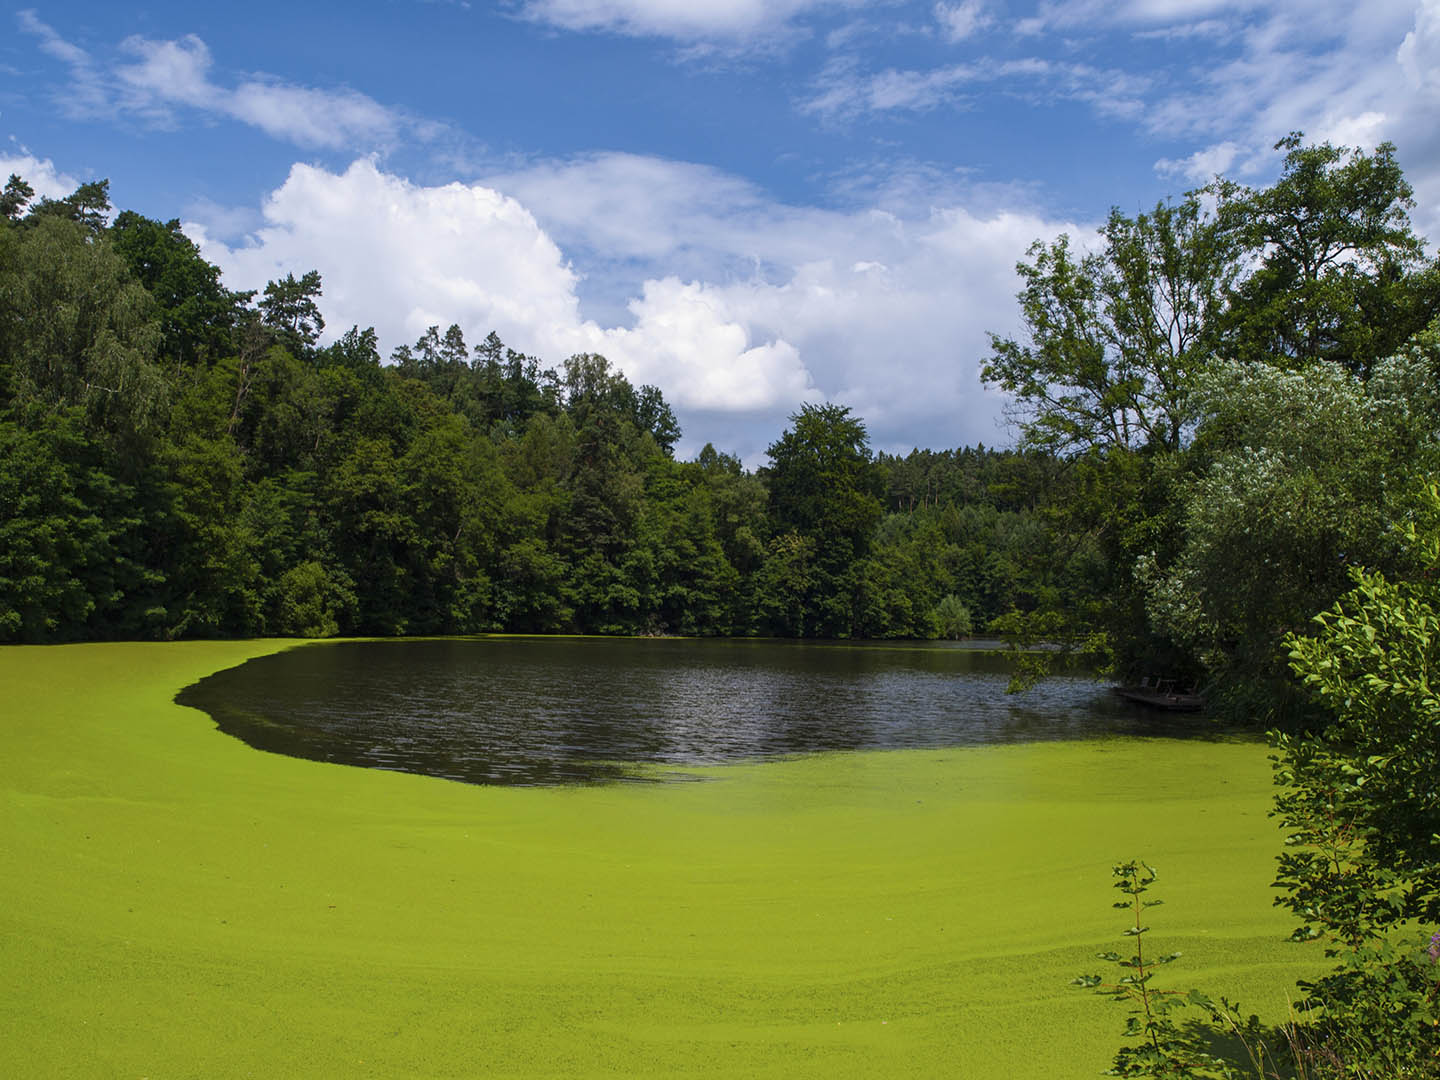 However, most ponds in areas where human live look like this -algae blooming on the water.